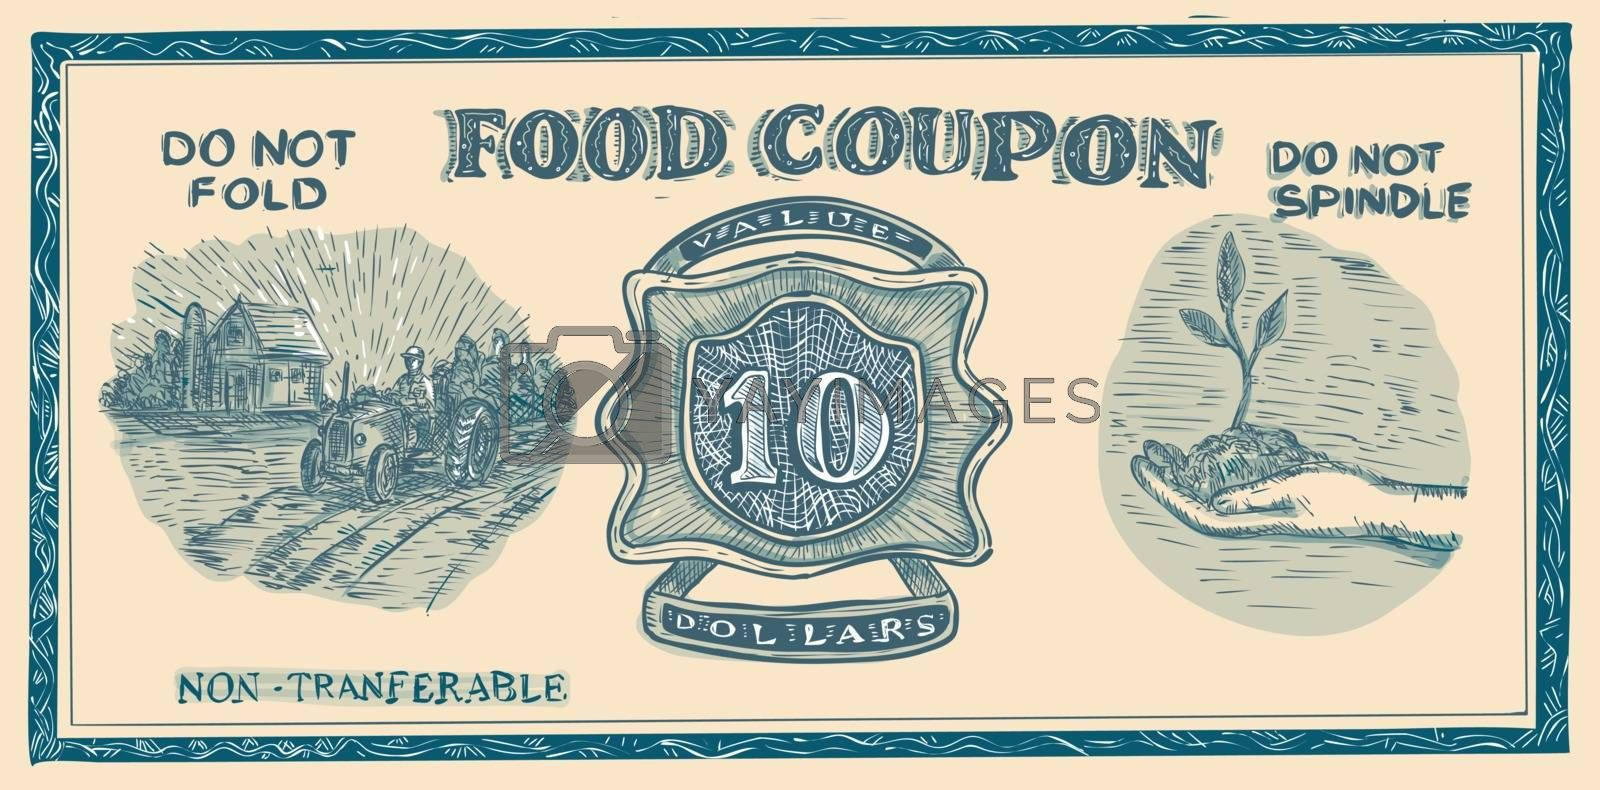 Drawing sketch style illustration of a vintage American food coupon or Food stuff ration on isolated white background.